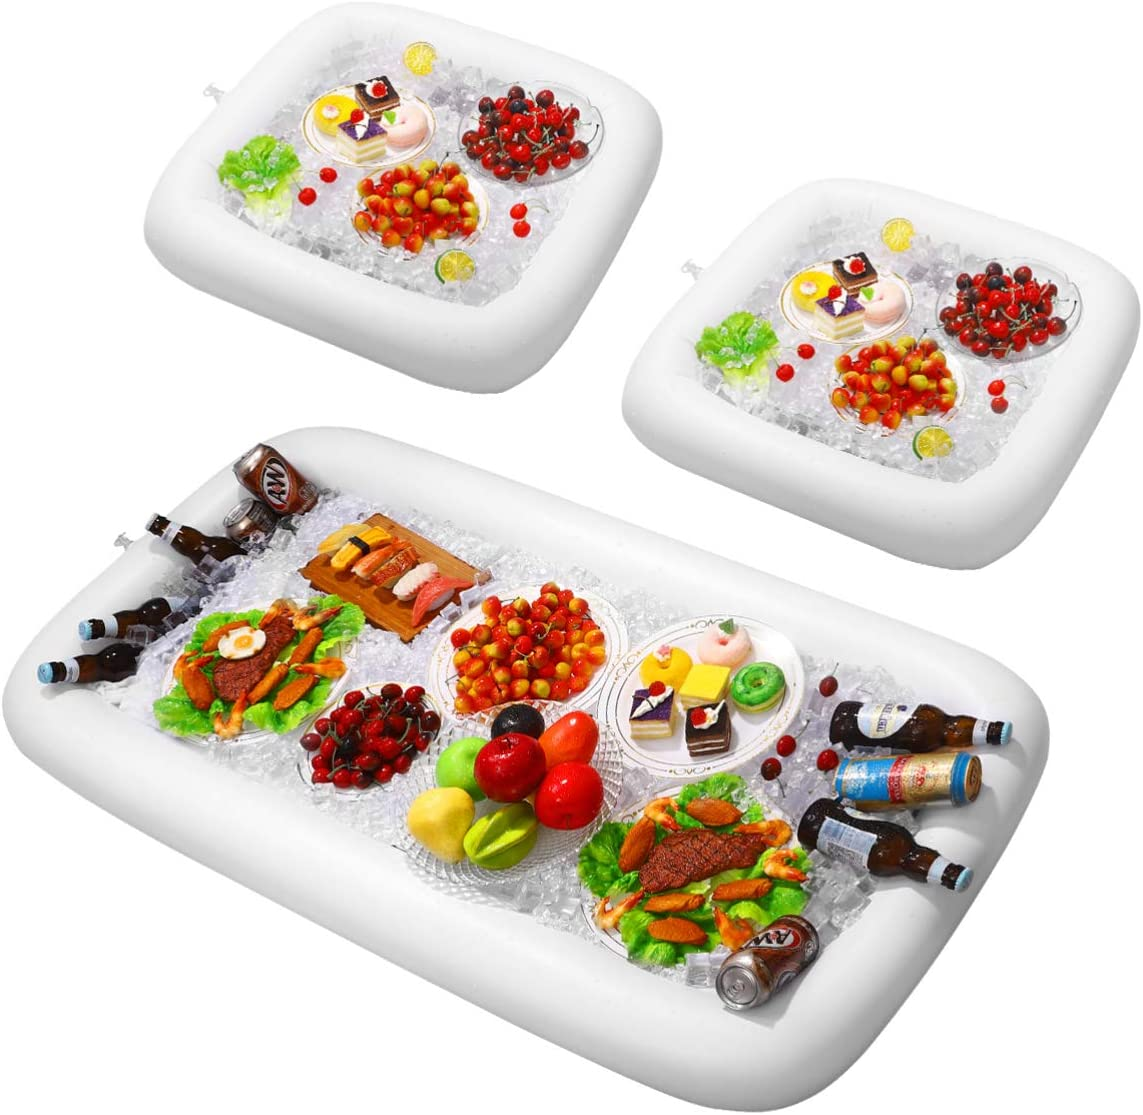 HEMOTON 3Pcs Inflatable Ice Serving Buffet Bar Waterproof Salad Food Drinks Tray Salad Cooler with Drain Plug for Picnic Camping Beach BBQ Picnic Pool Party White